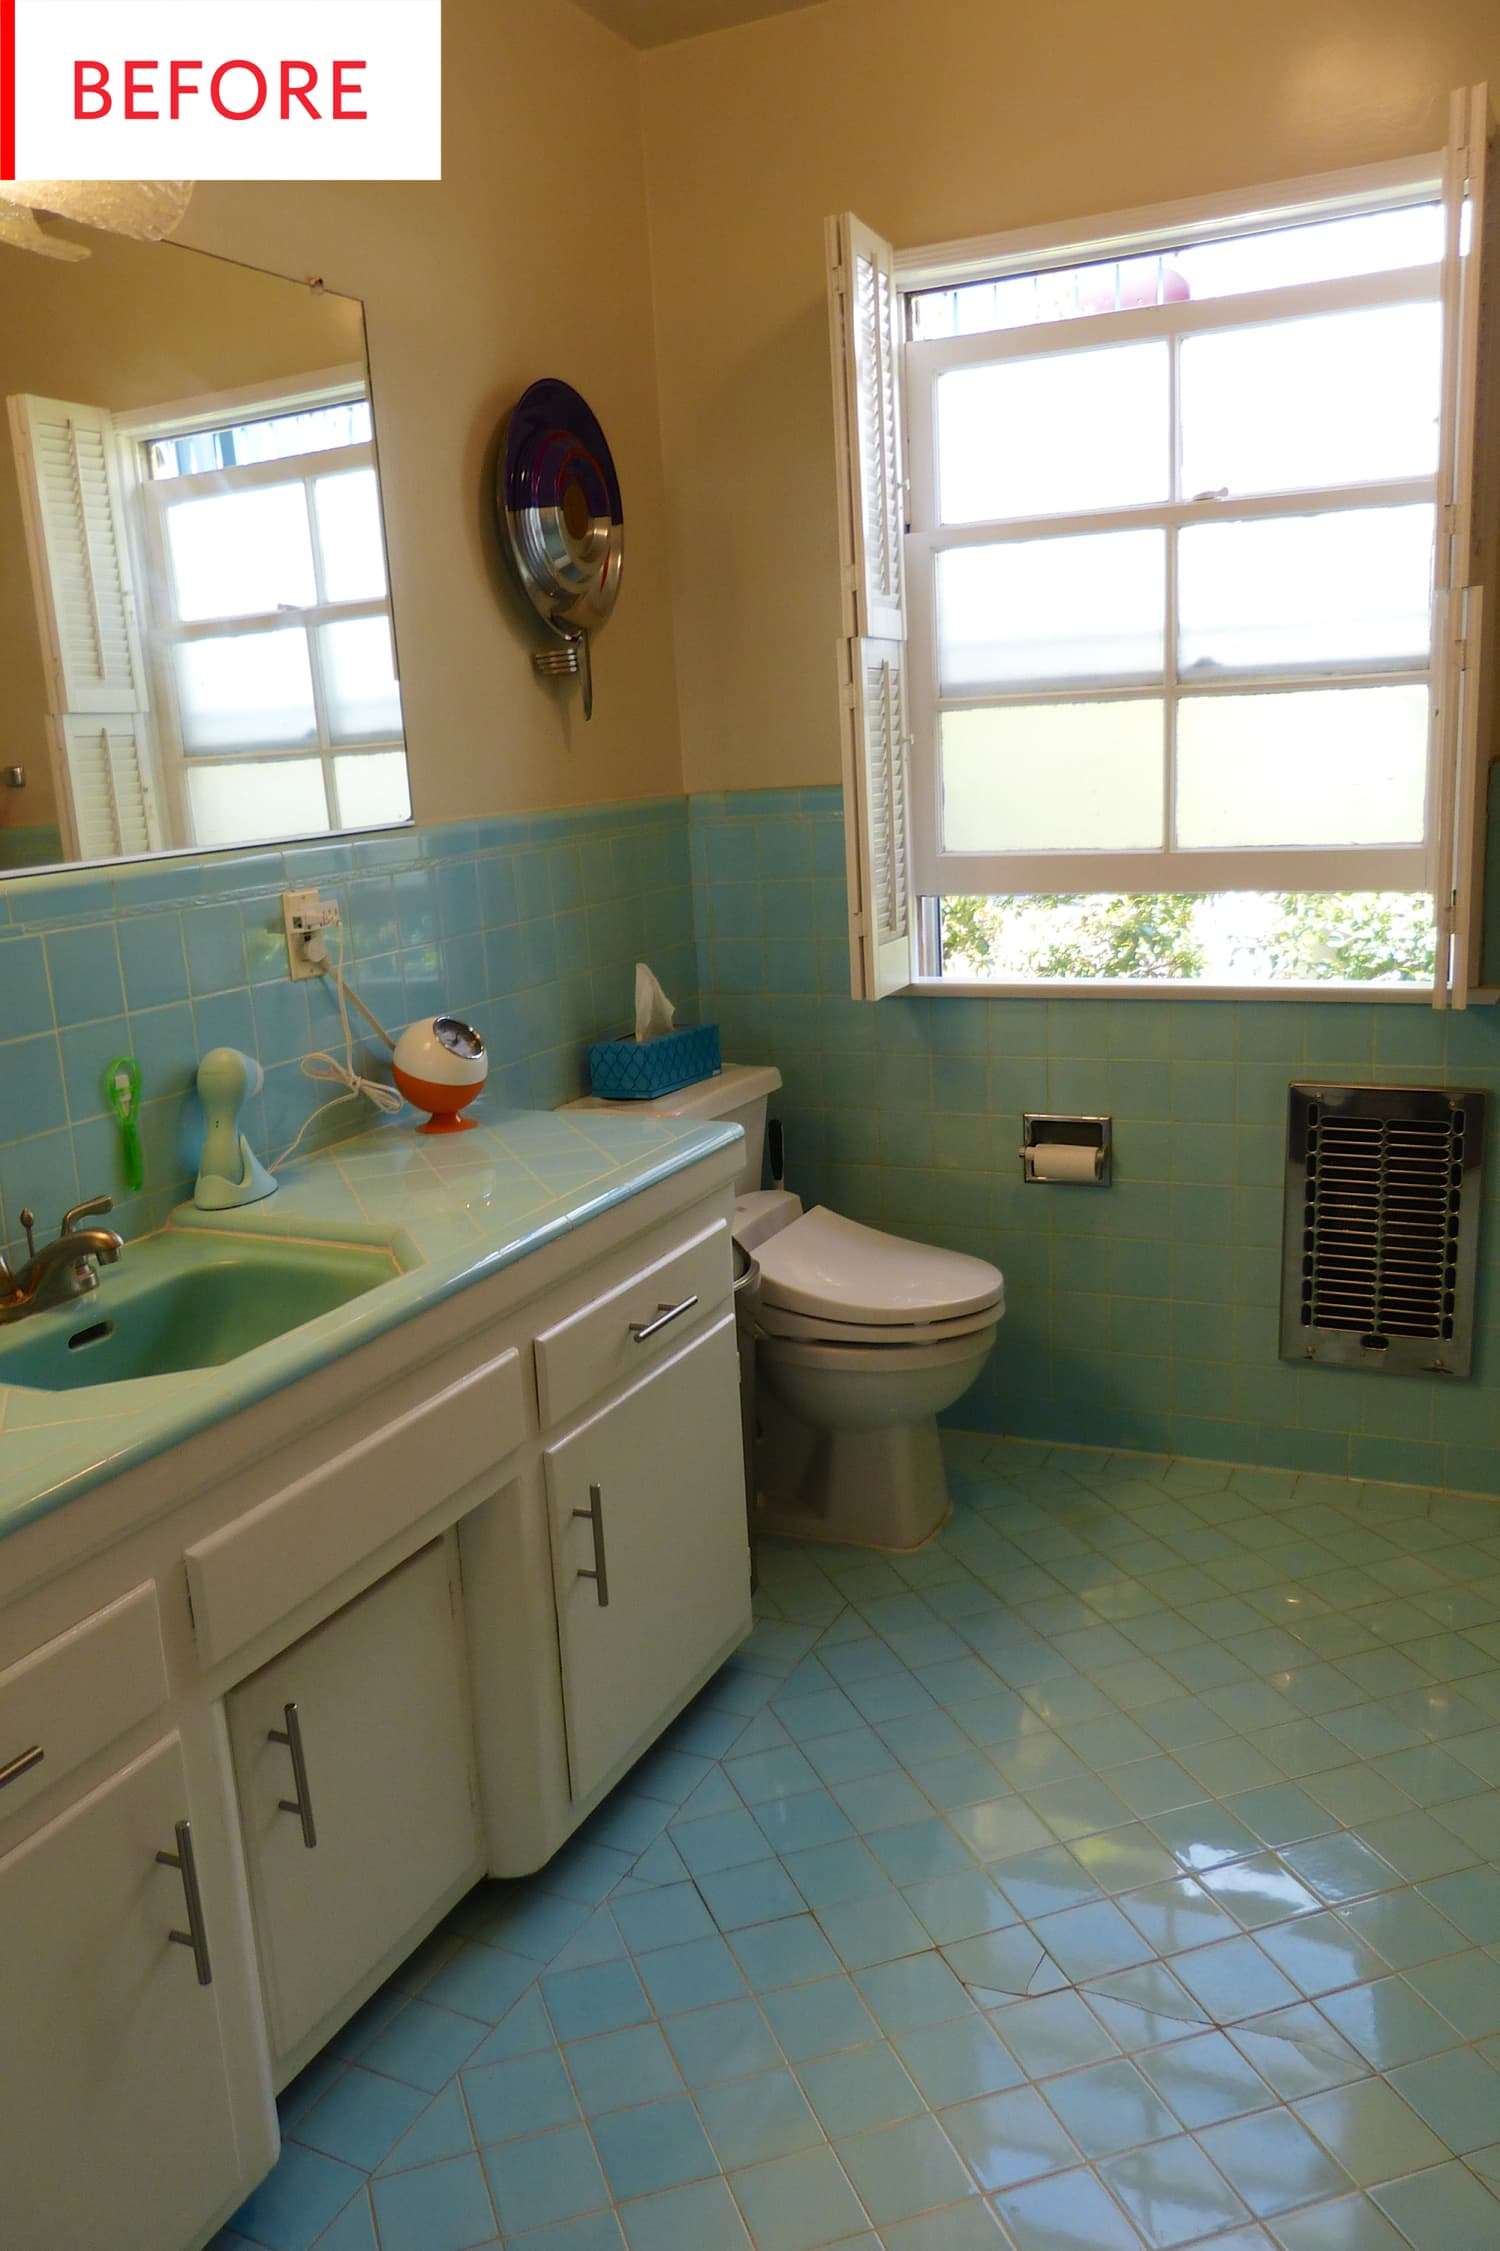 Before and After: This Bathroom Keeps Its Original Tiles